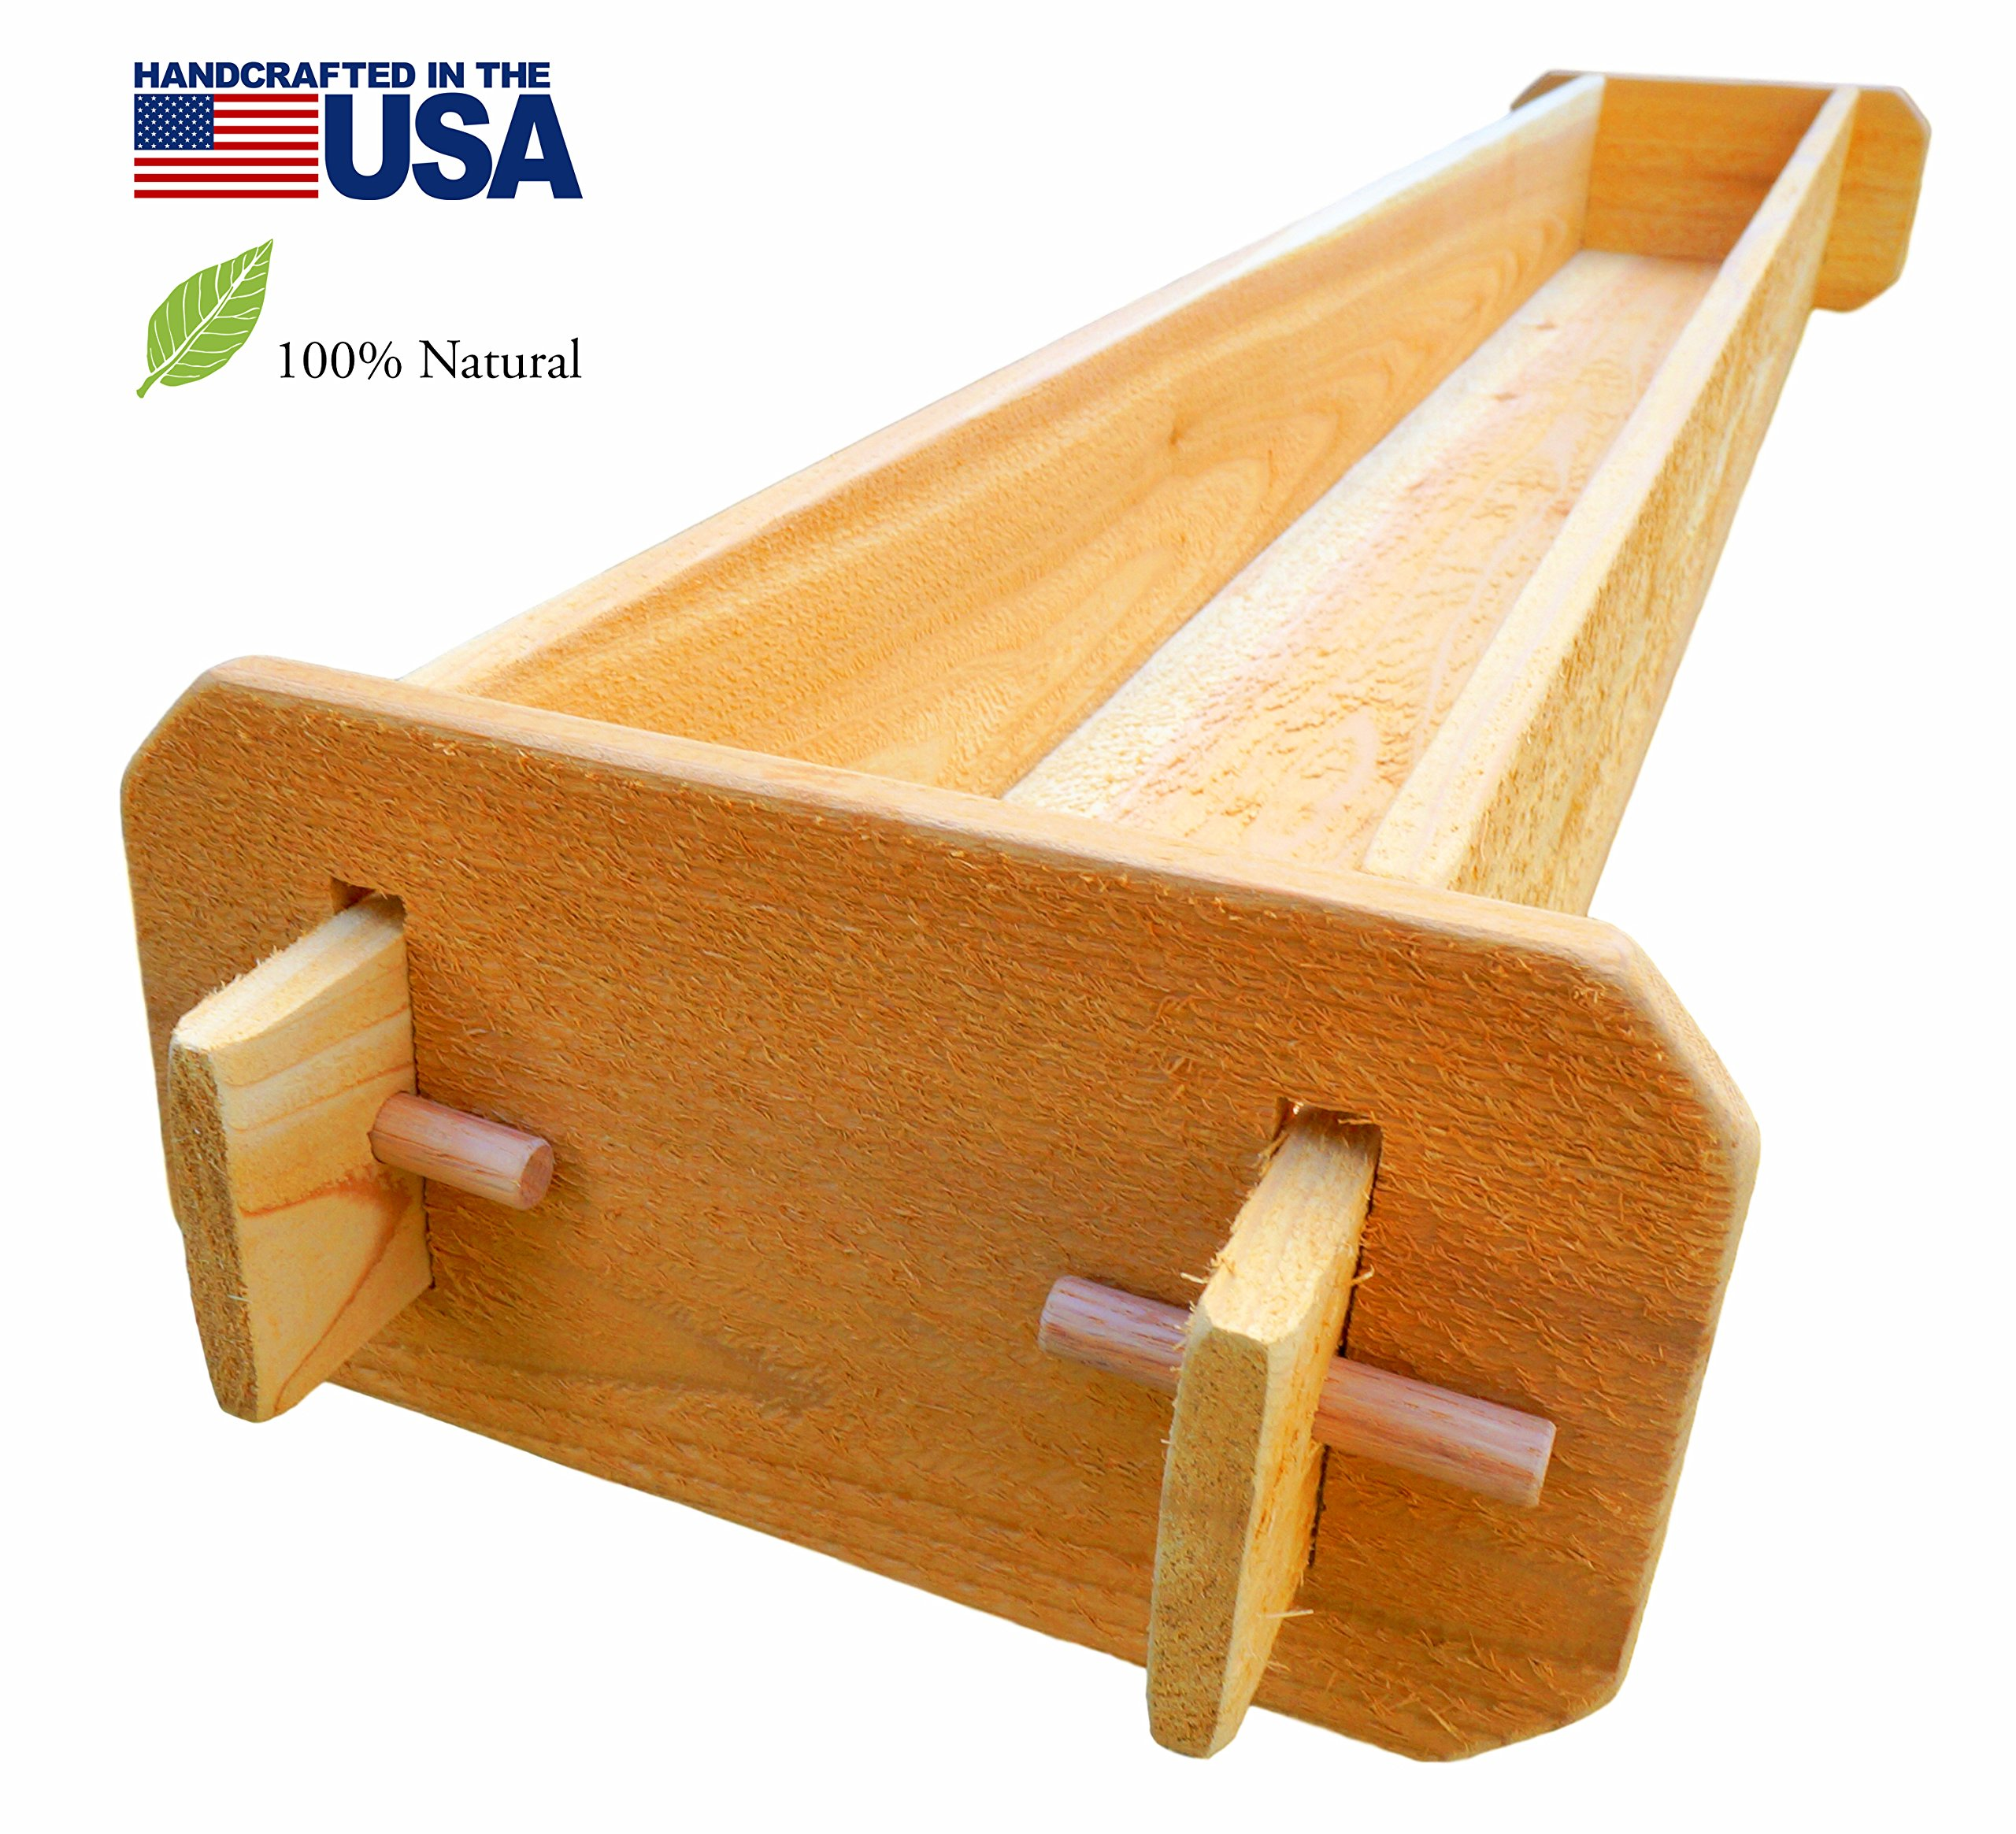 Timberlane Gardens Long Outdoor Rectangular Planter Box Kit Deck Patio Balcony Western Red Cedar with Mortise and Tenon Joinery